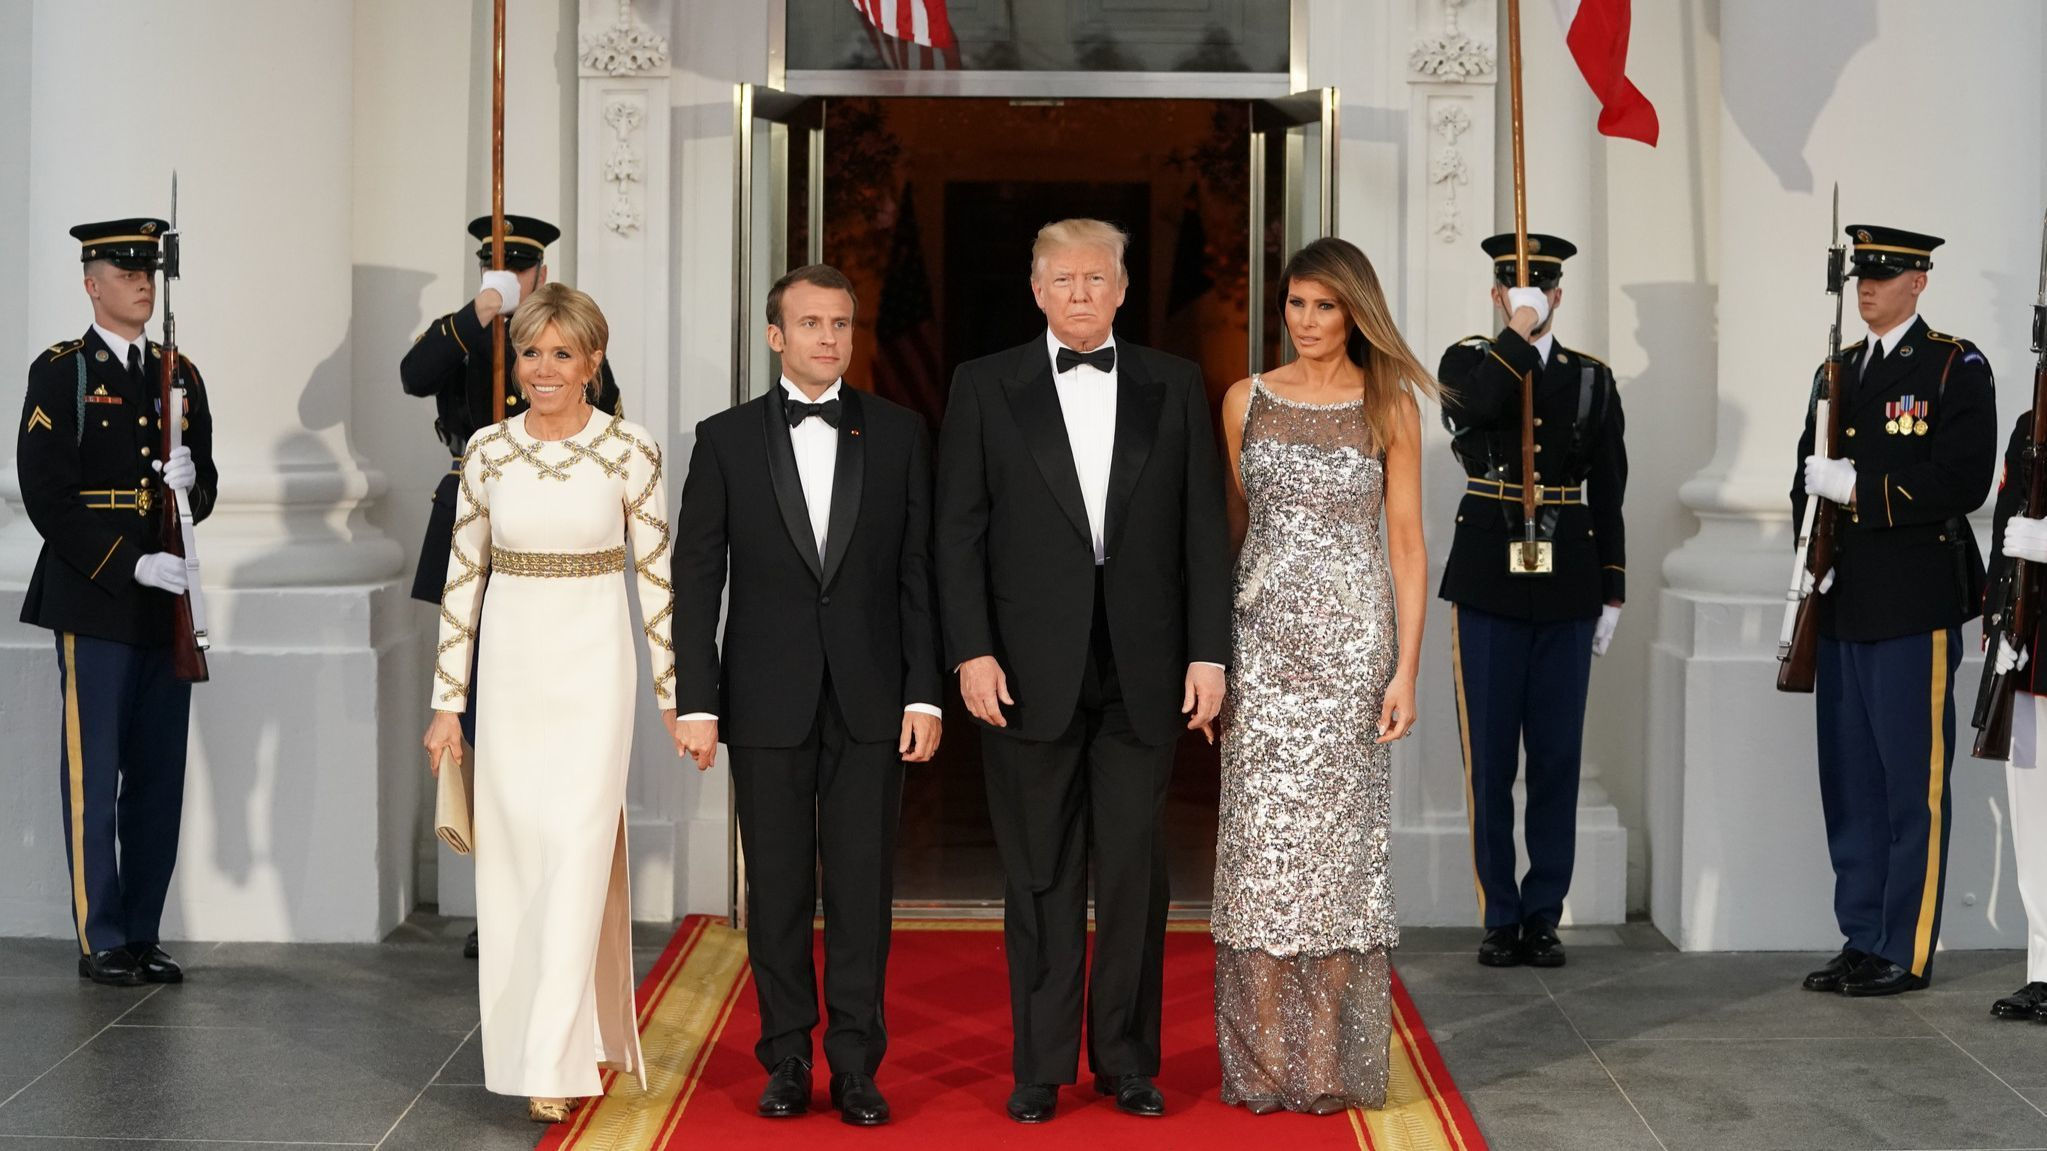 French President Emmanuel Macron's wife Brigitte Macron, left, wears Louis Vuitton, and First Lady Melania Trump wears Chanel for Tuesday's state dinner at the White House.